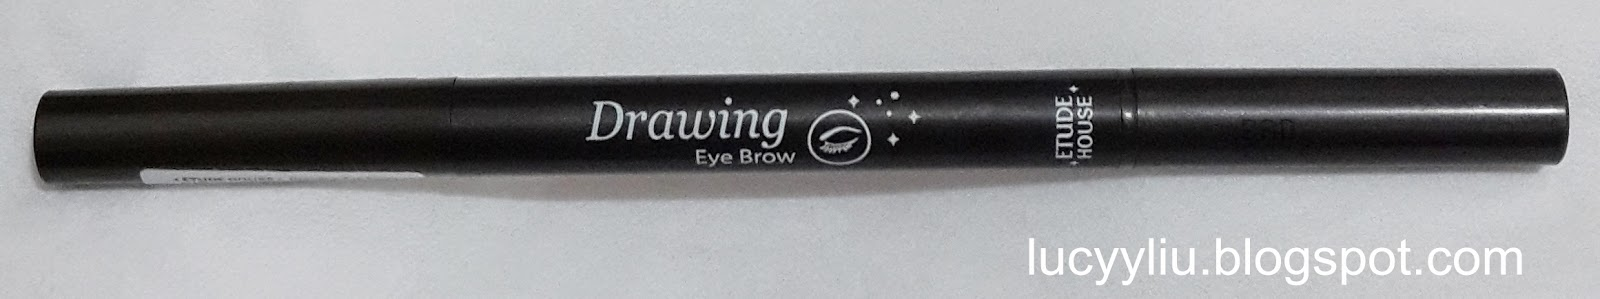 Etude House Drawing Eye Brow #1 Dark Brown